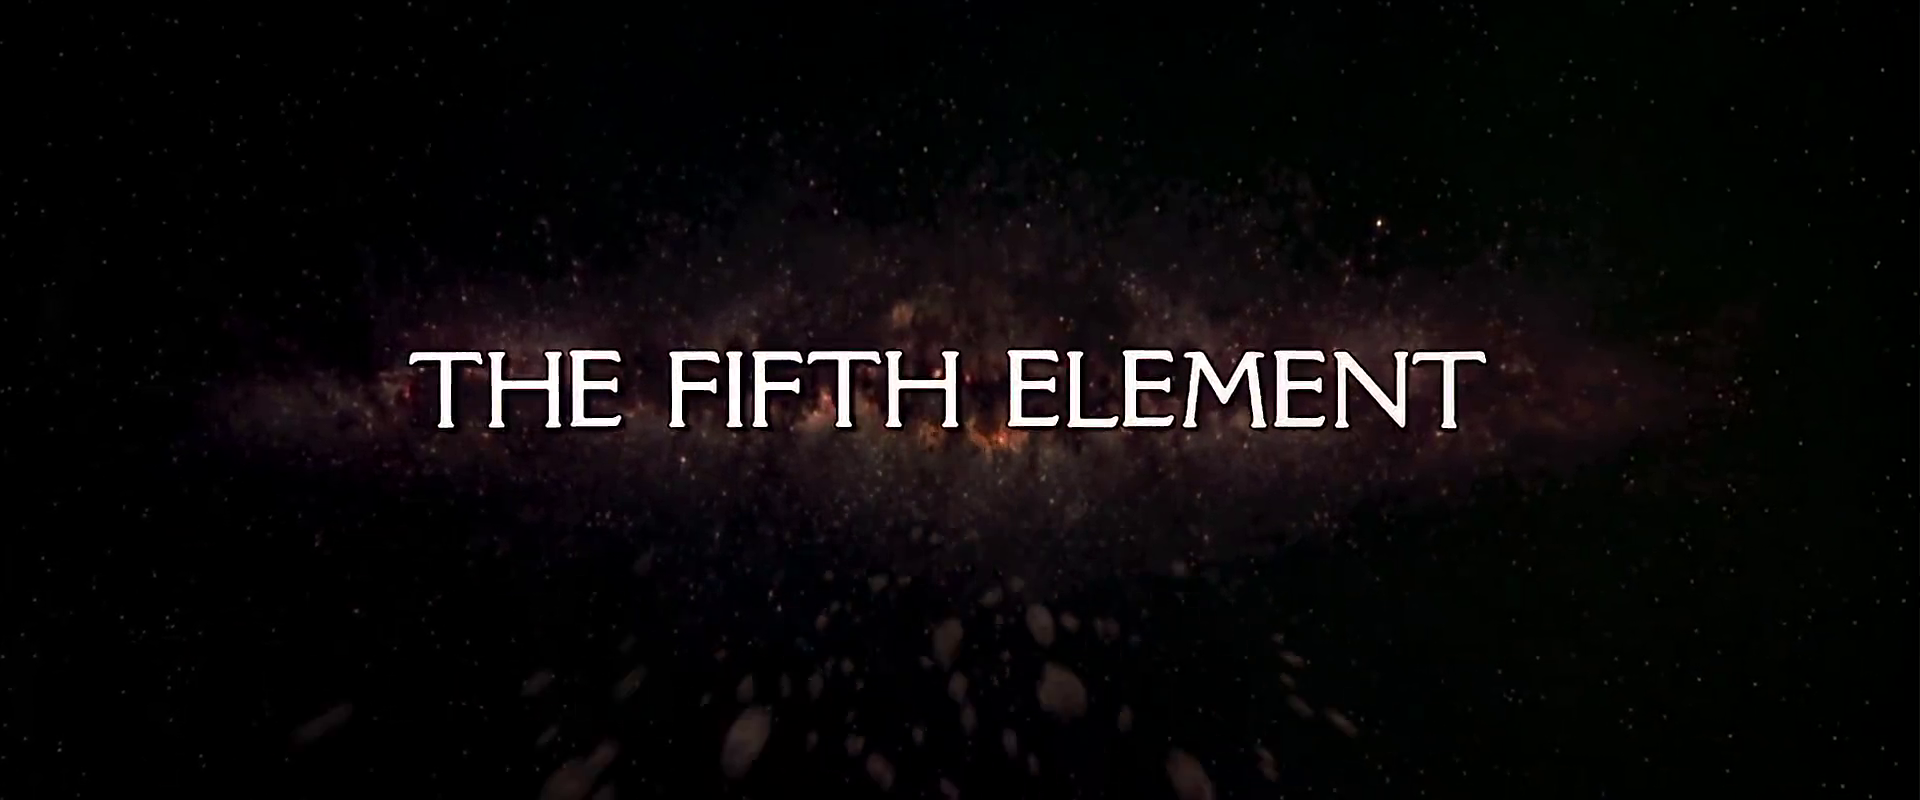 The fifth element aliens